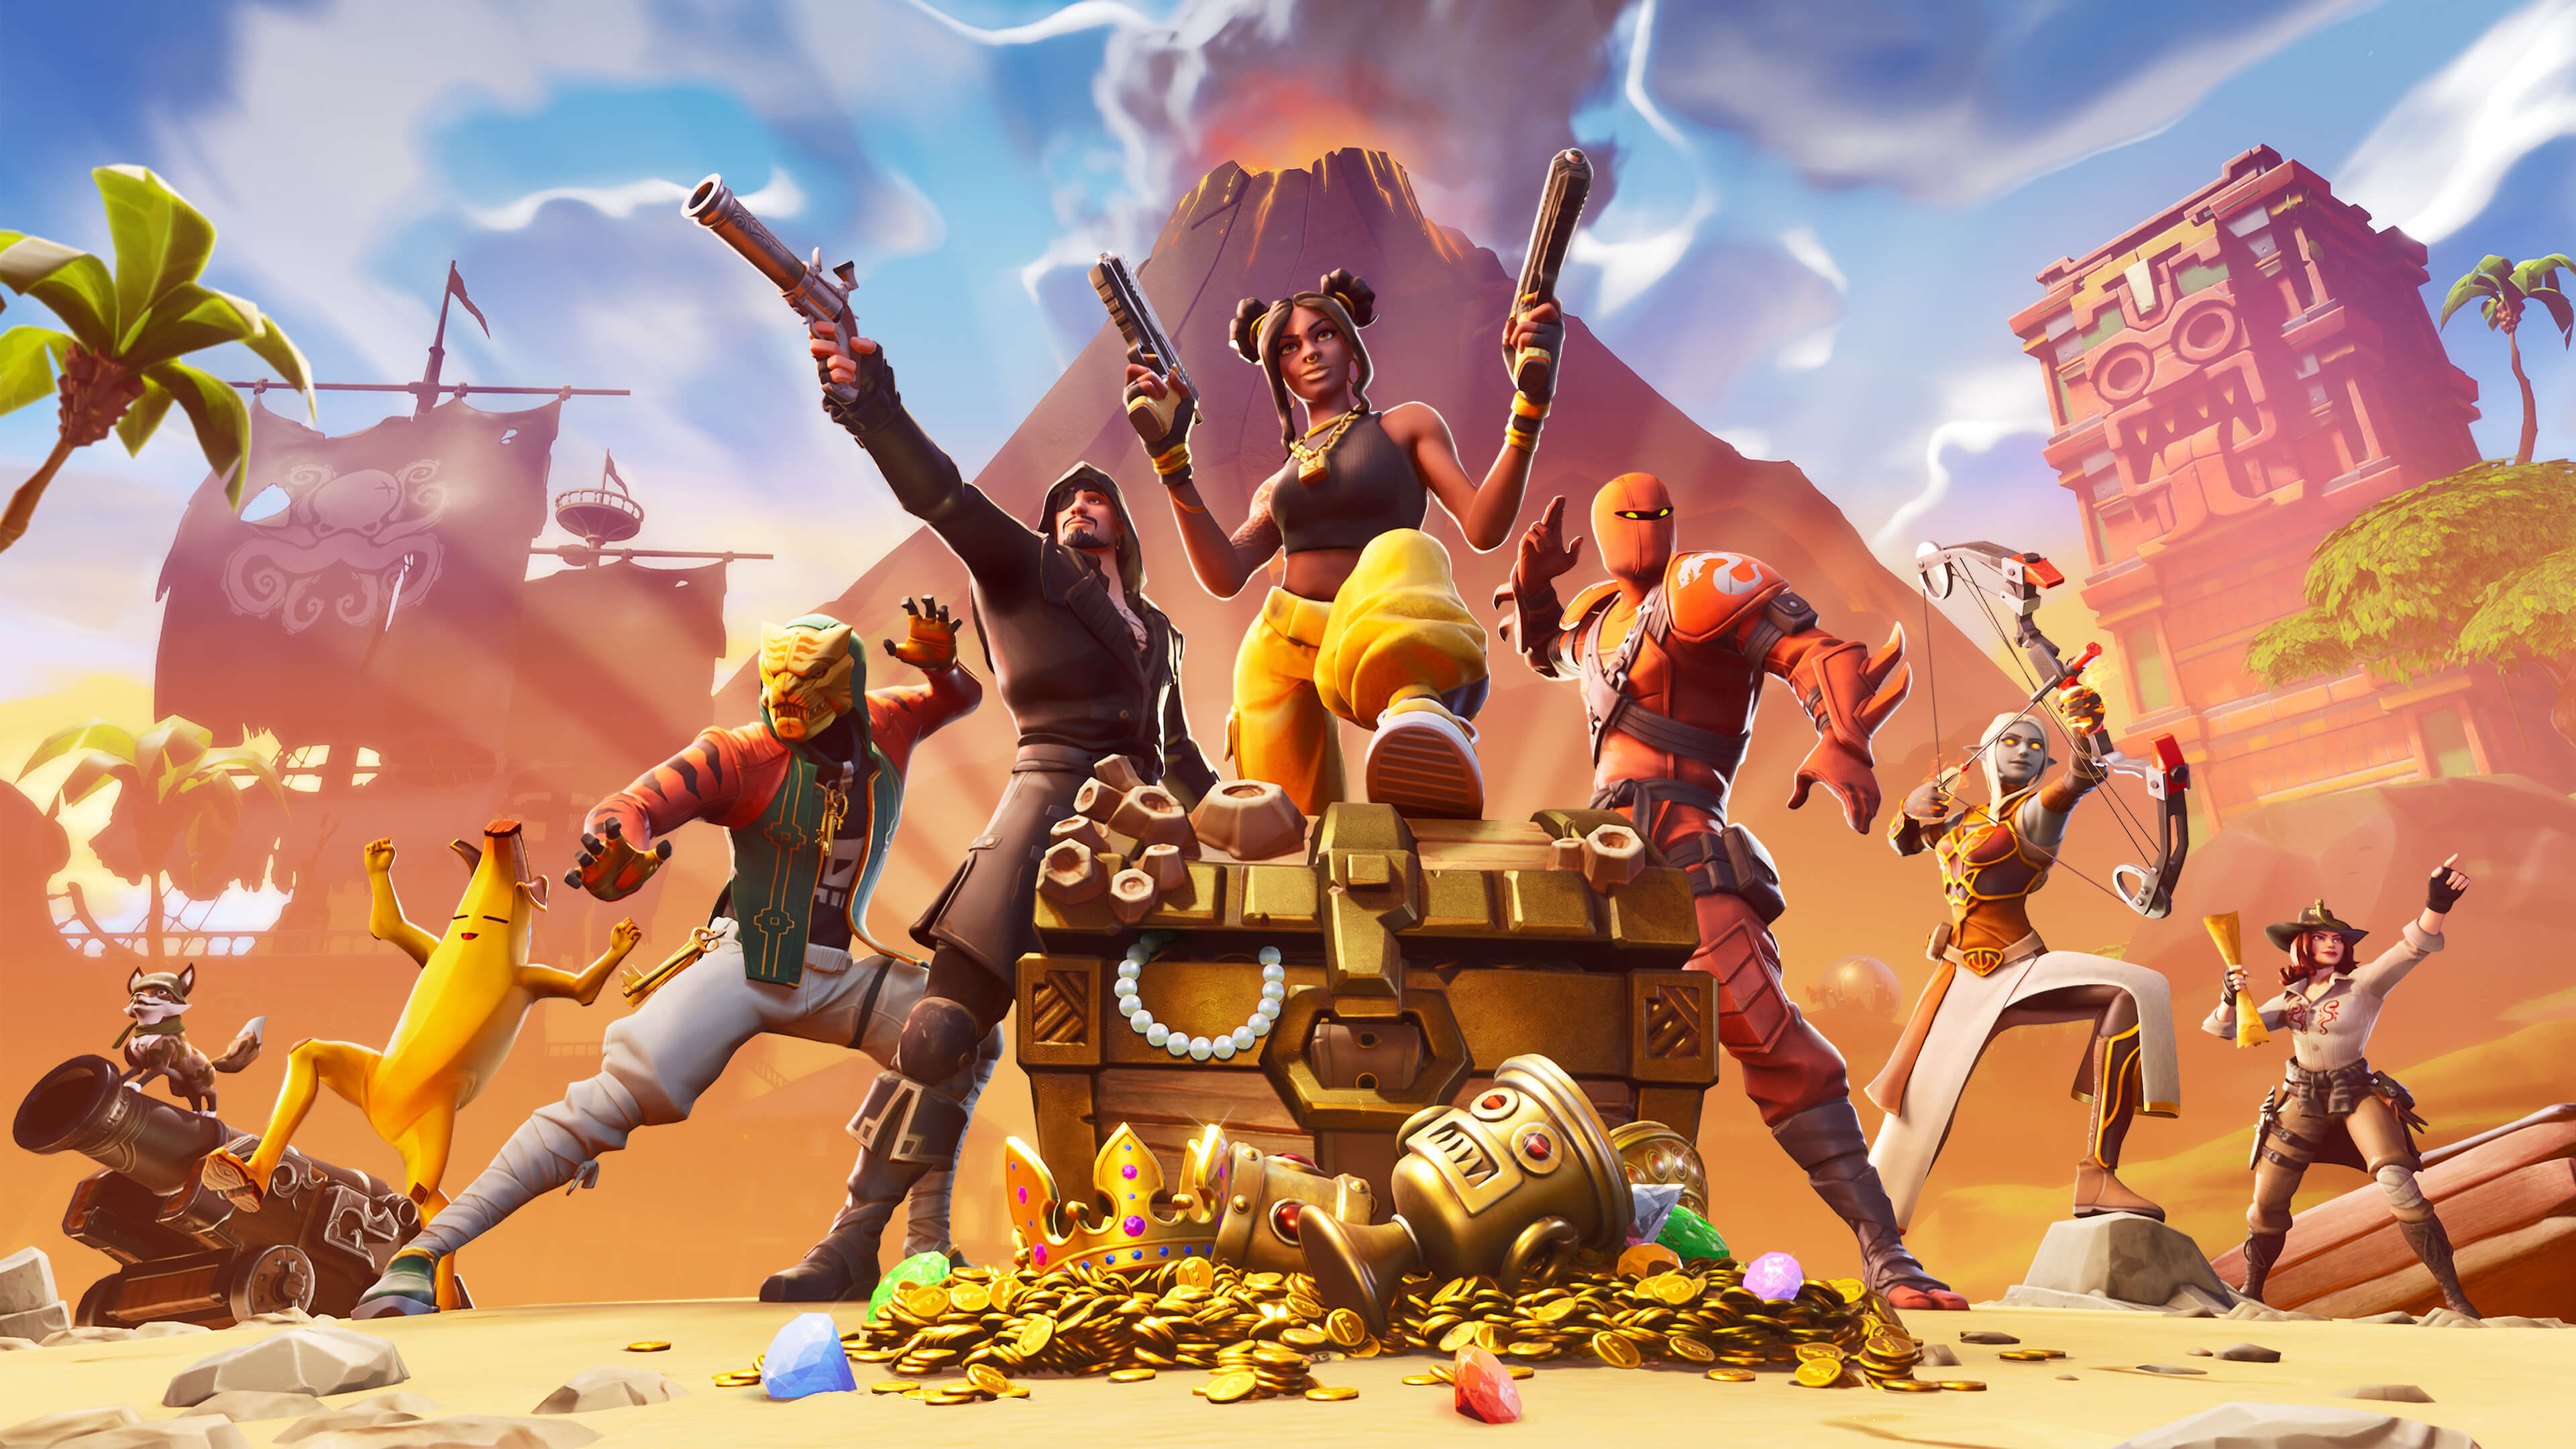 Report Shows Overworked Epic Employees Behind Fortnite's Success